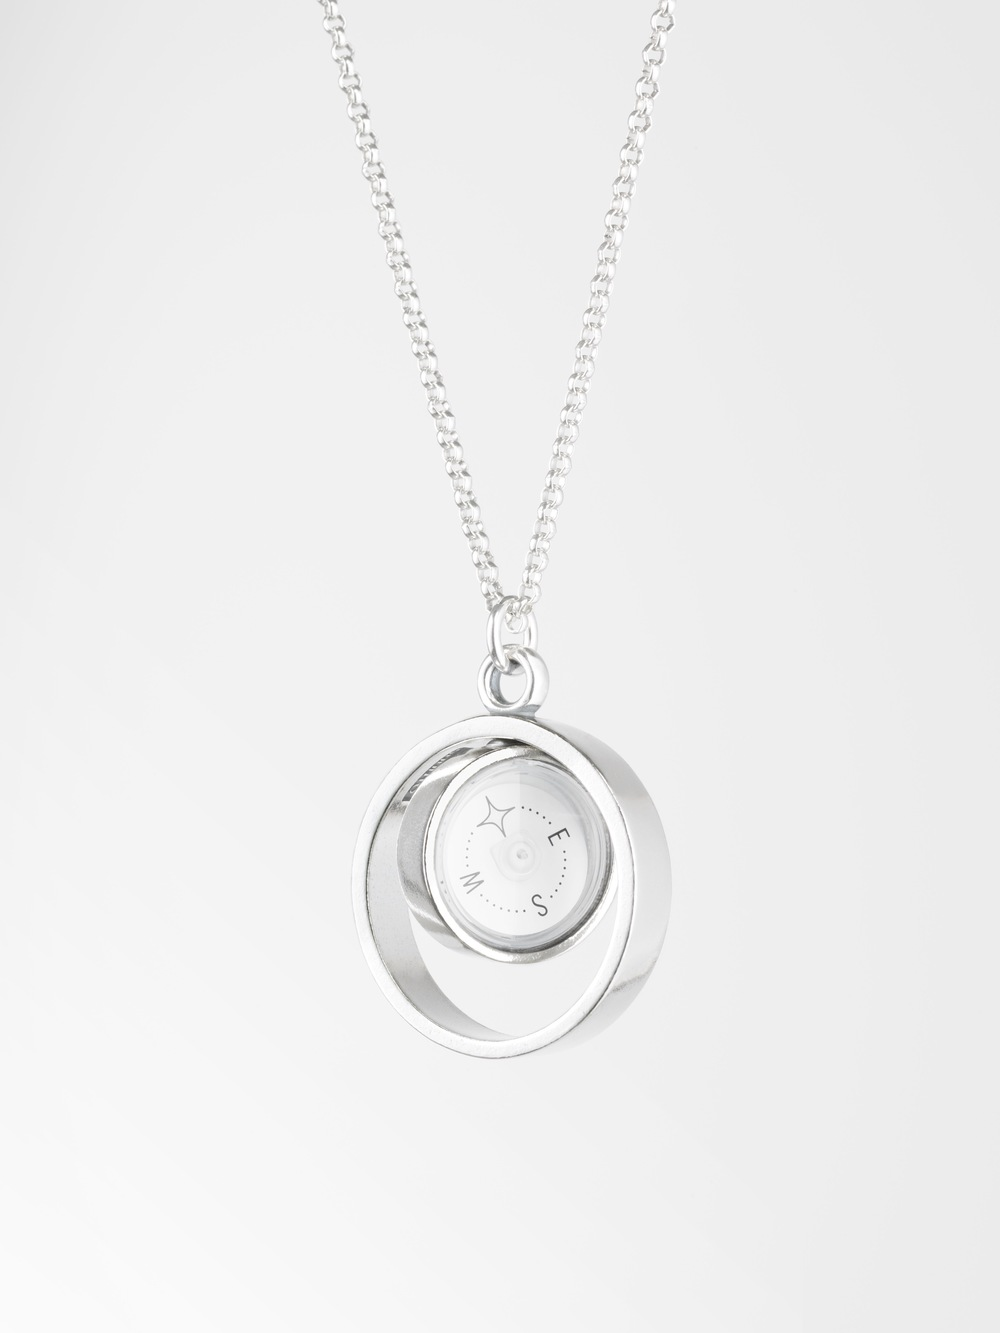 Design for suunto the guiding star compass necklace lina simons guiding star silver compass pendant designed in 2014 this picture is a property aloadofball Image collections